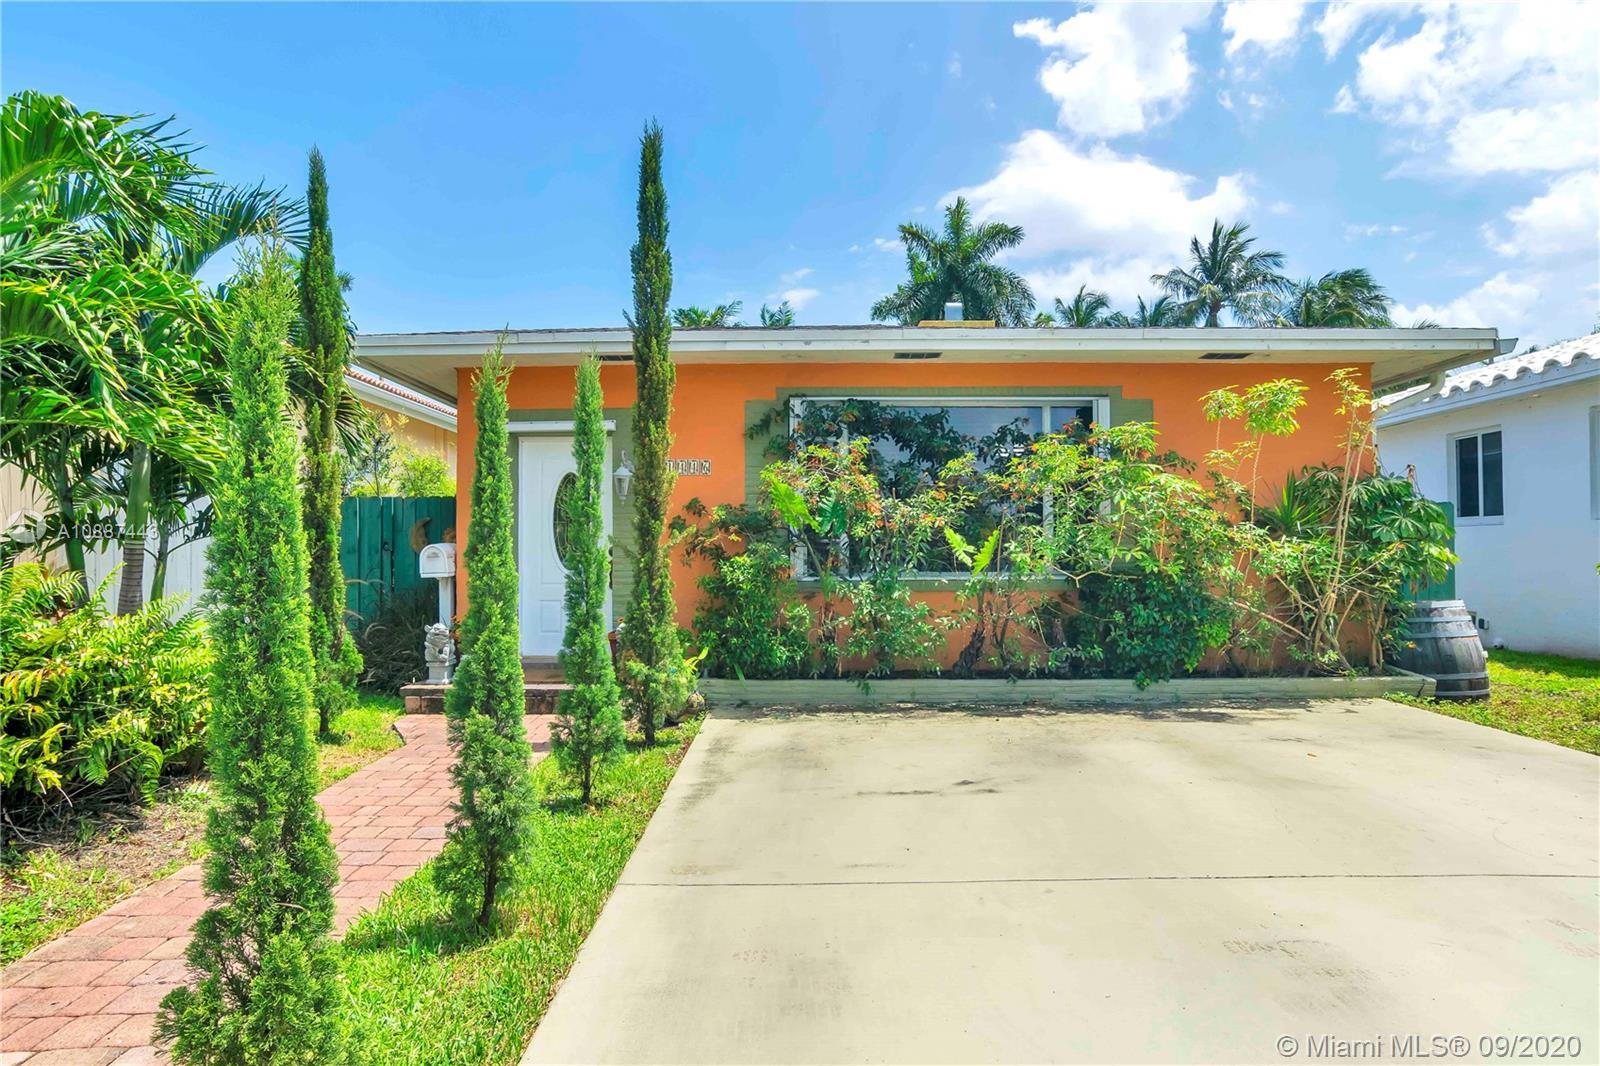 HOLLYWOOD LAKES GEM...SITUATED CLOSE TO THE FAMOUS HOLLYWOOD BROADWALK, BEACHES, DOWNTOWN, DINING AN